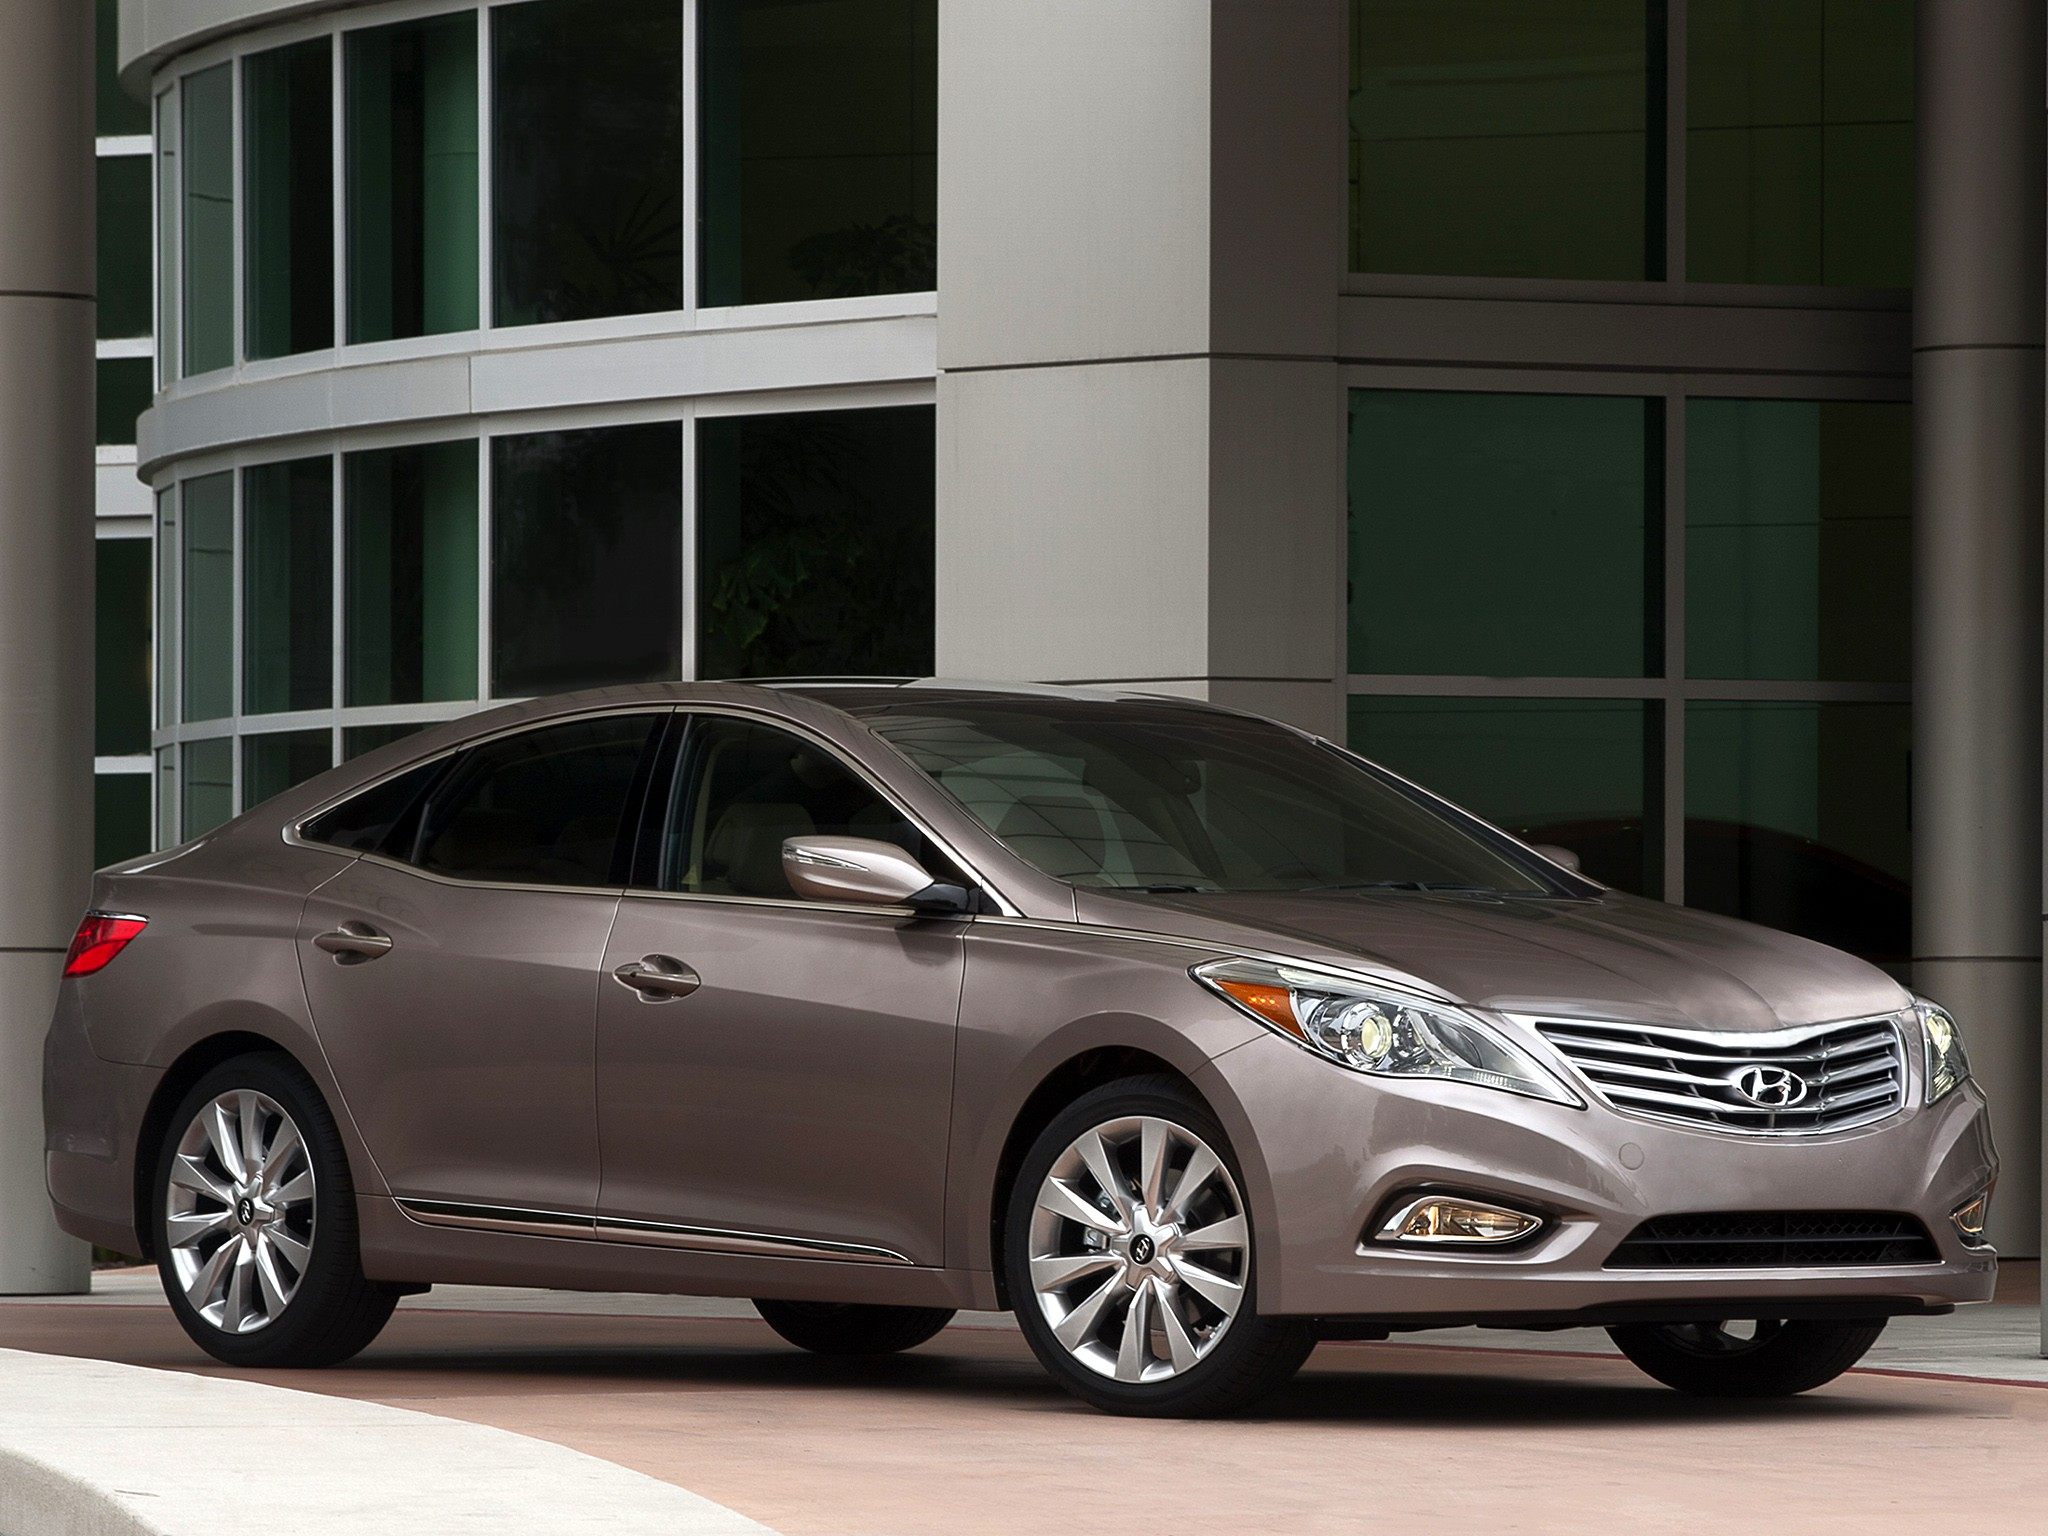 Azera 2018 Interior >> HYUNDAI Azera specs & photos - 2012, 2013, 2014, 2015, 2016, 2017, 2018 - autoevolution